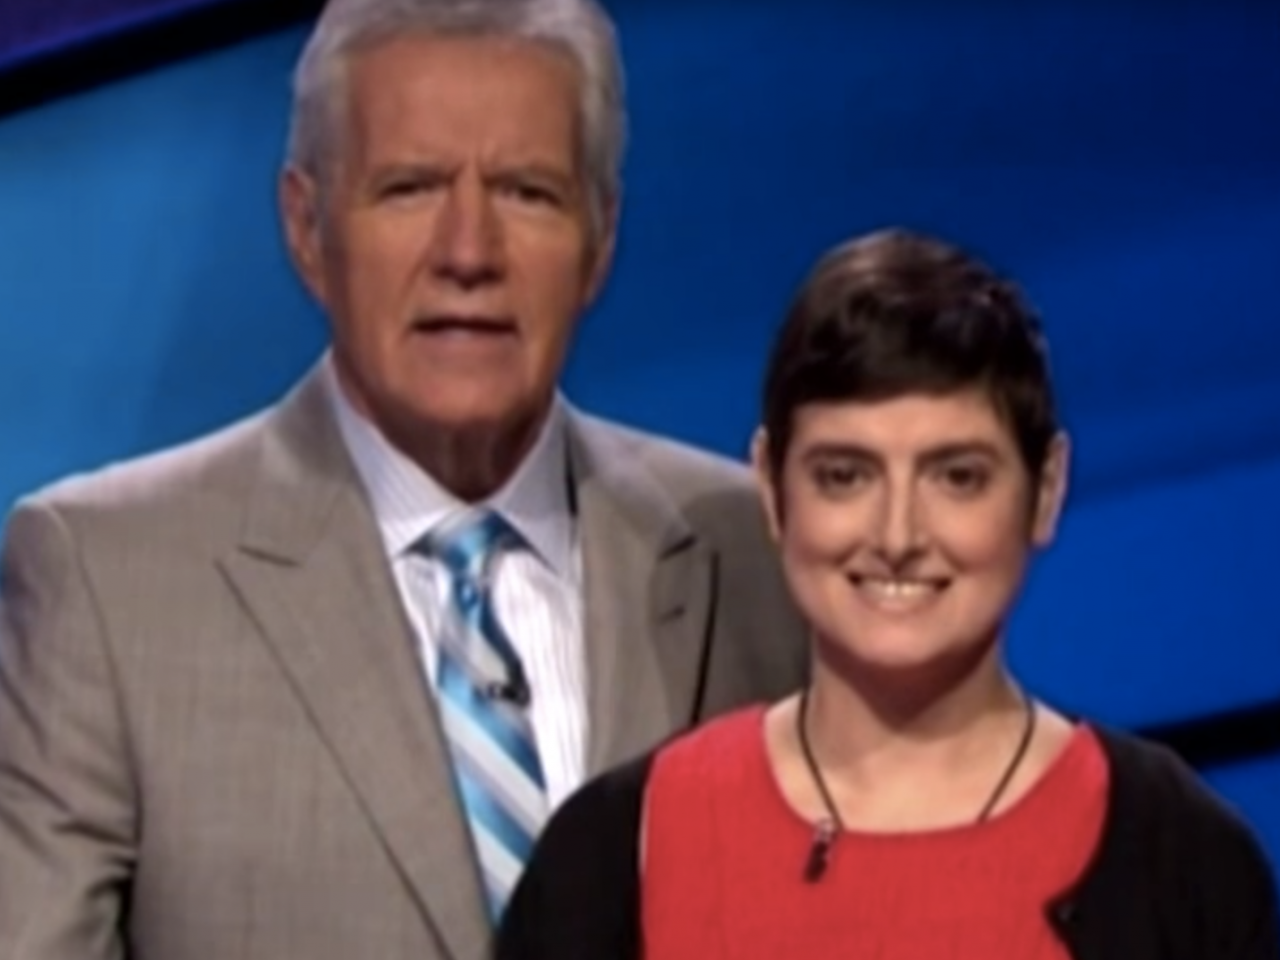 'Jeopardy!' champ who died kept winning streak a secret